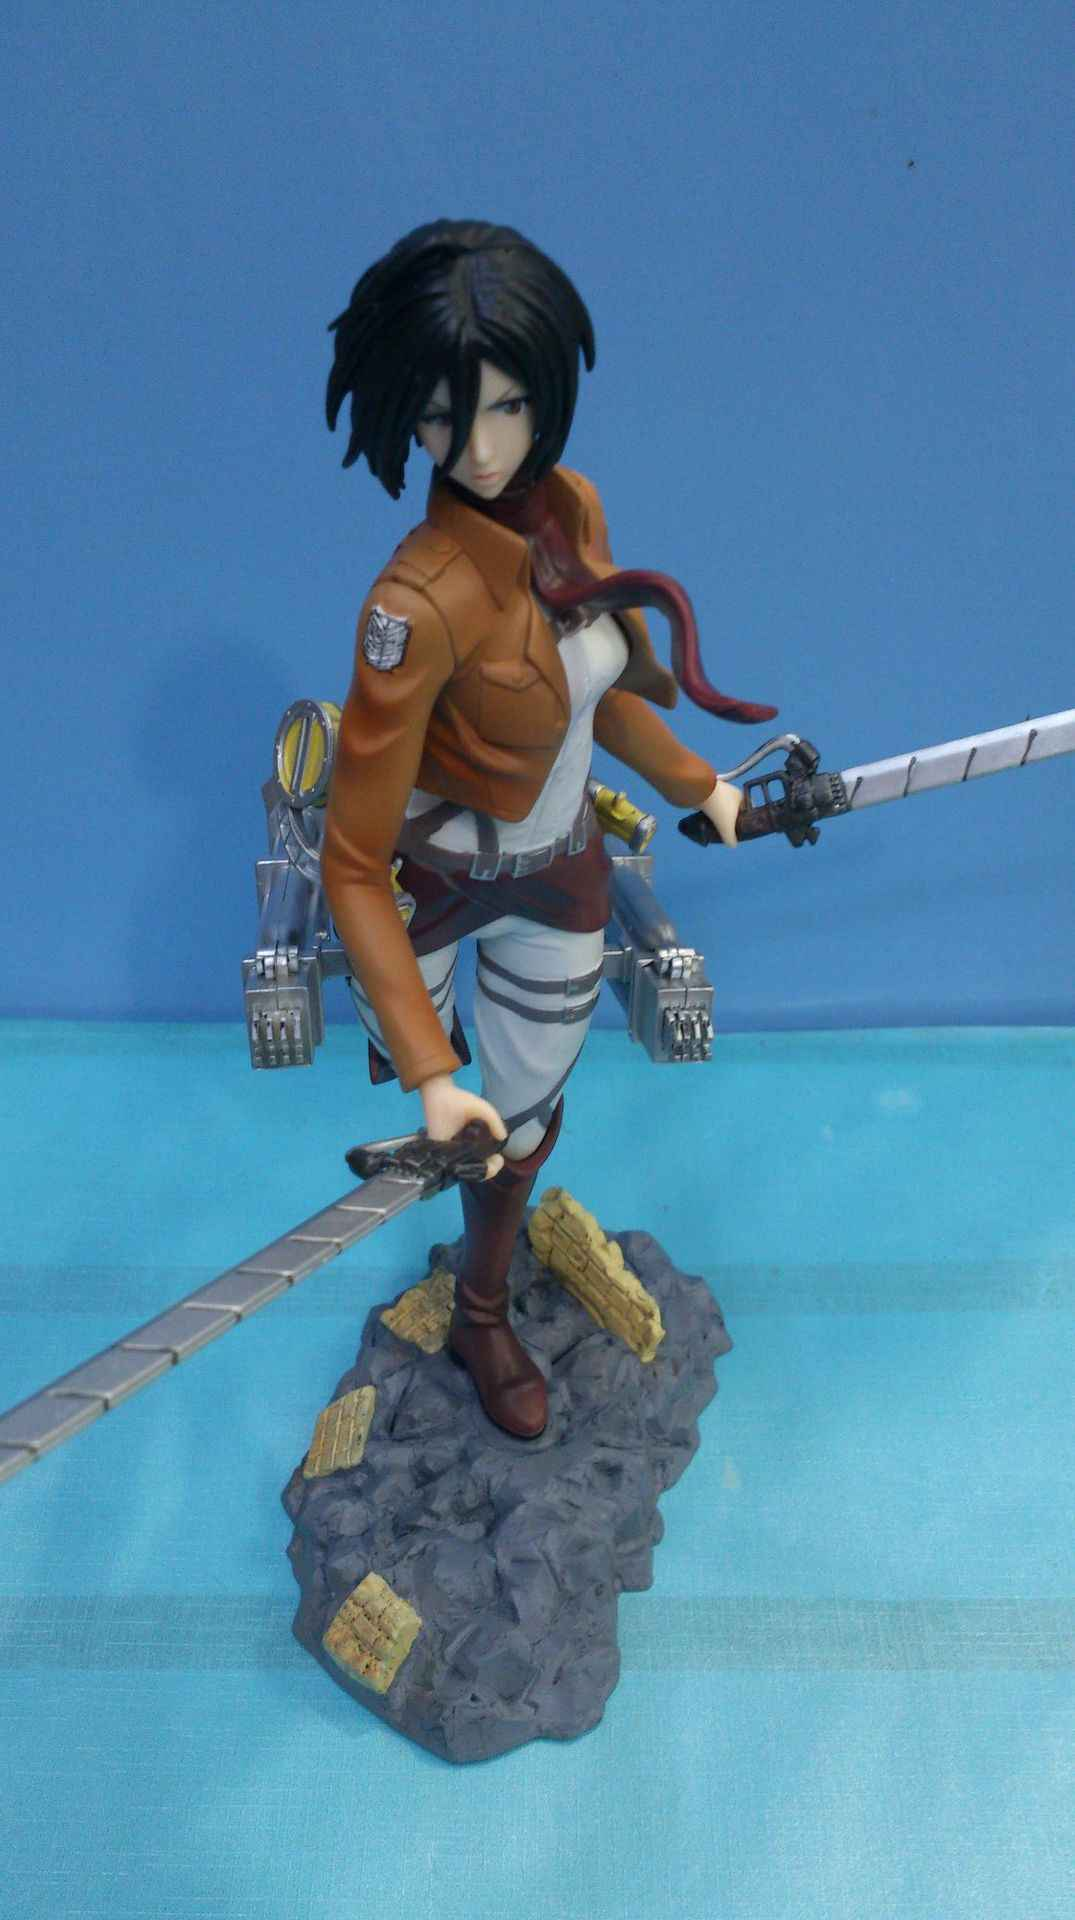 25 cm JG Chen Frete Grátis Anime Figma Attack on Titan Mikasa Ackerman PVC Action Figure Collectible Modelo Toy